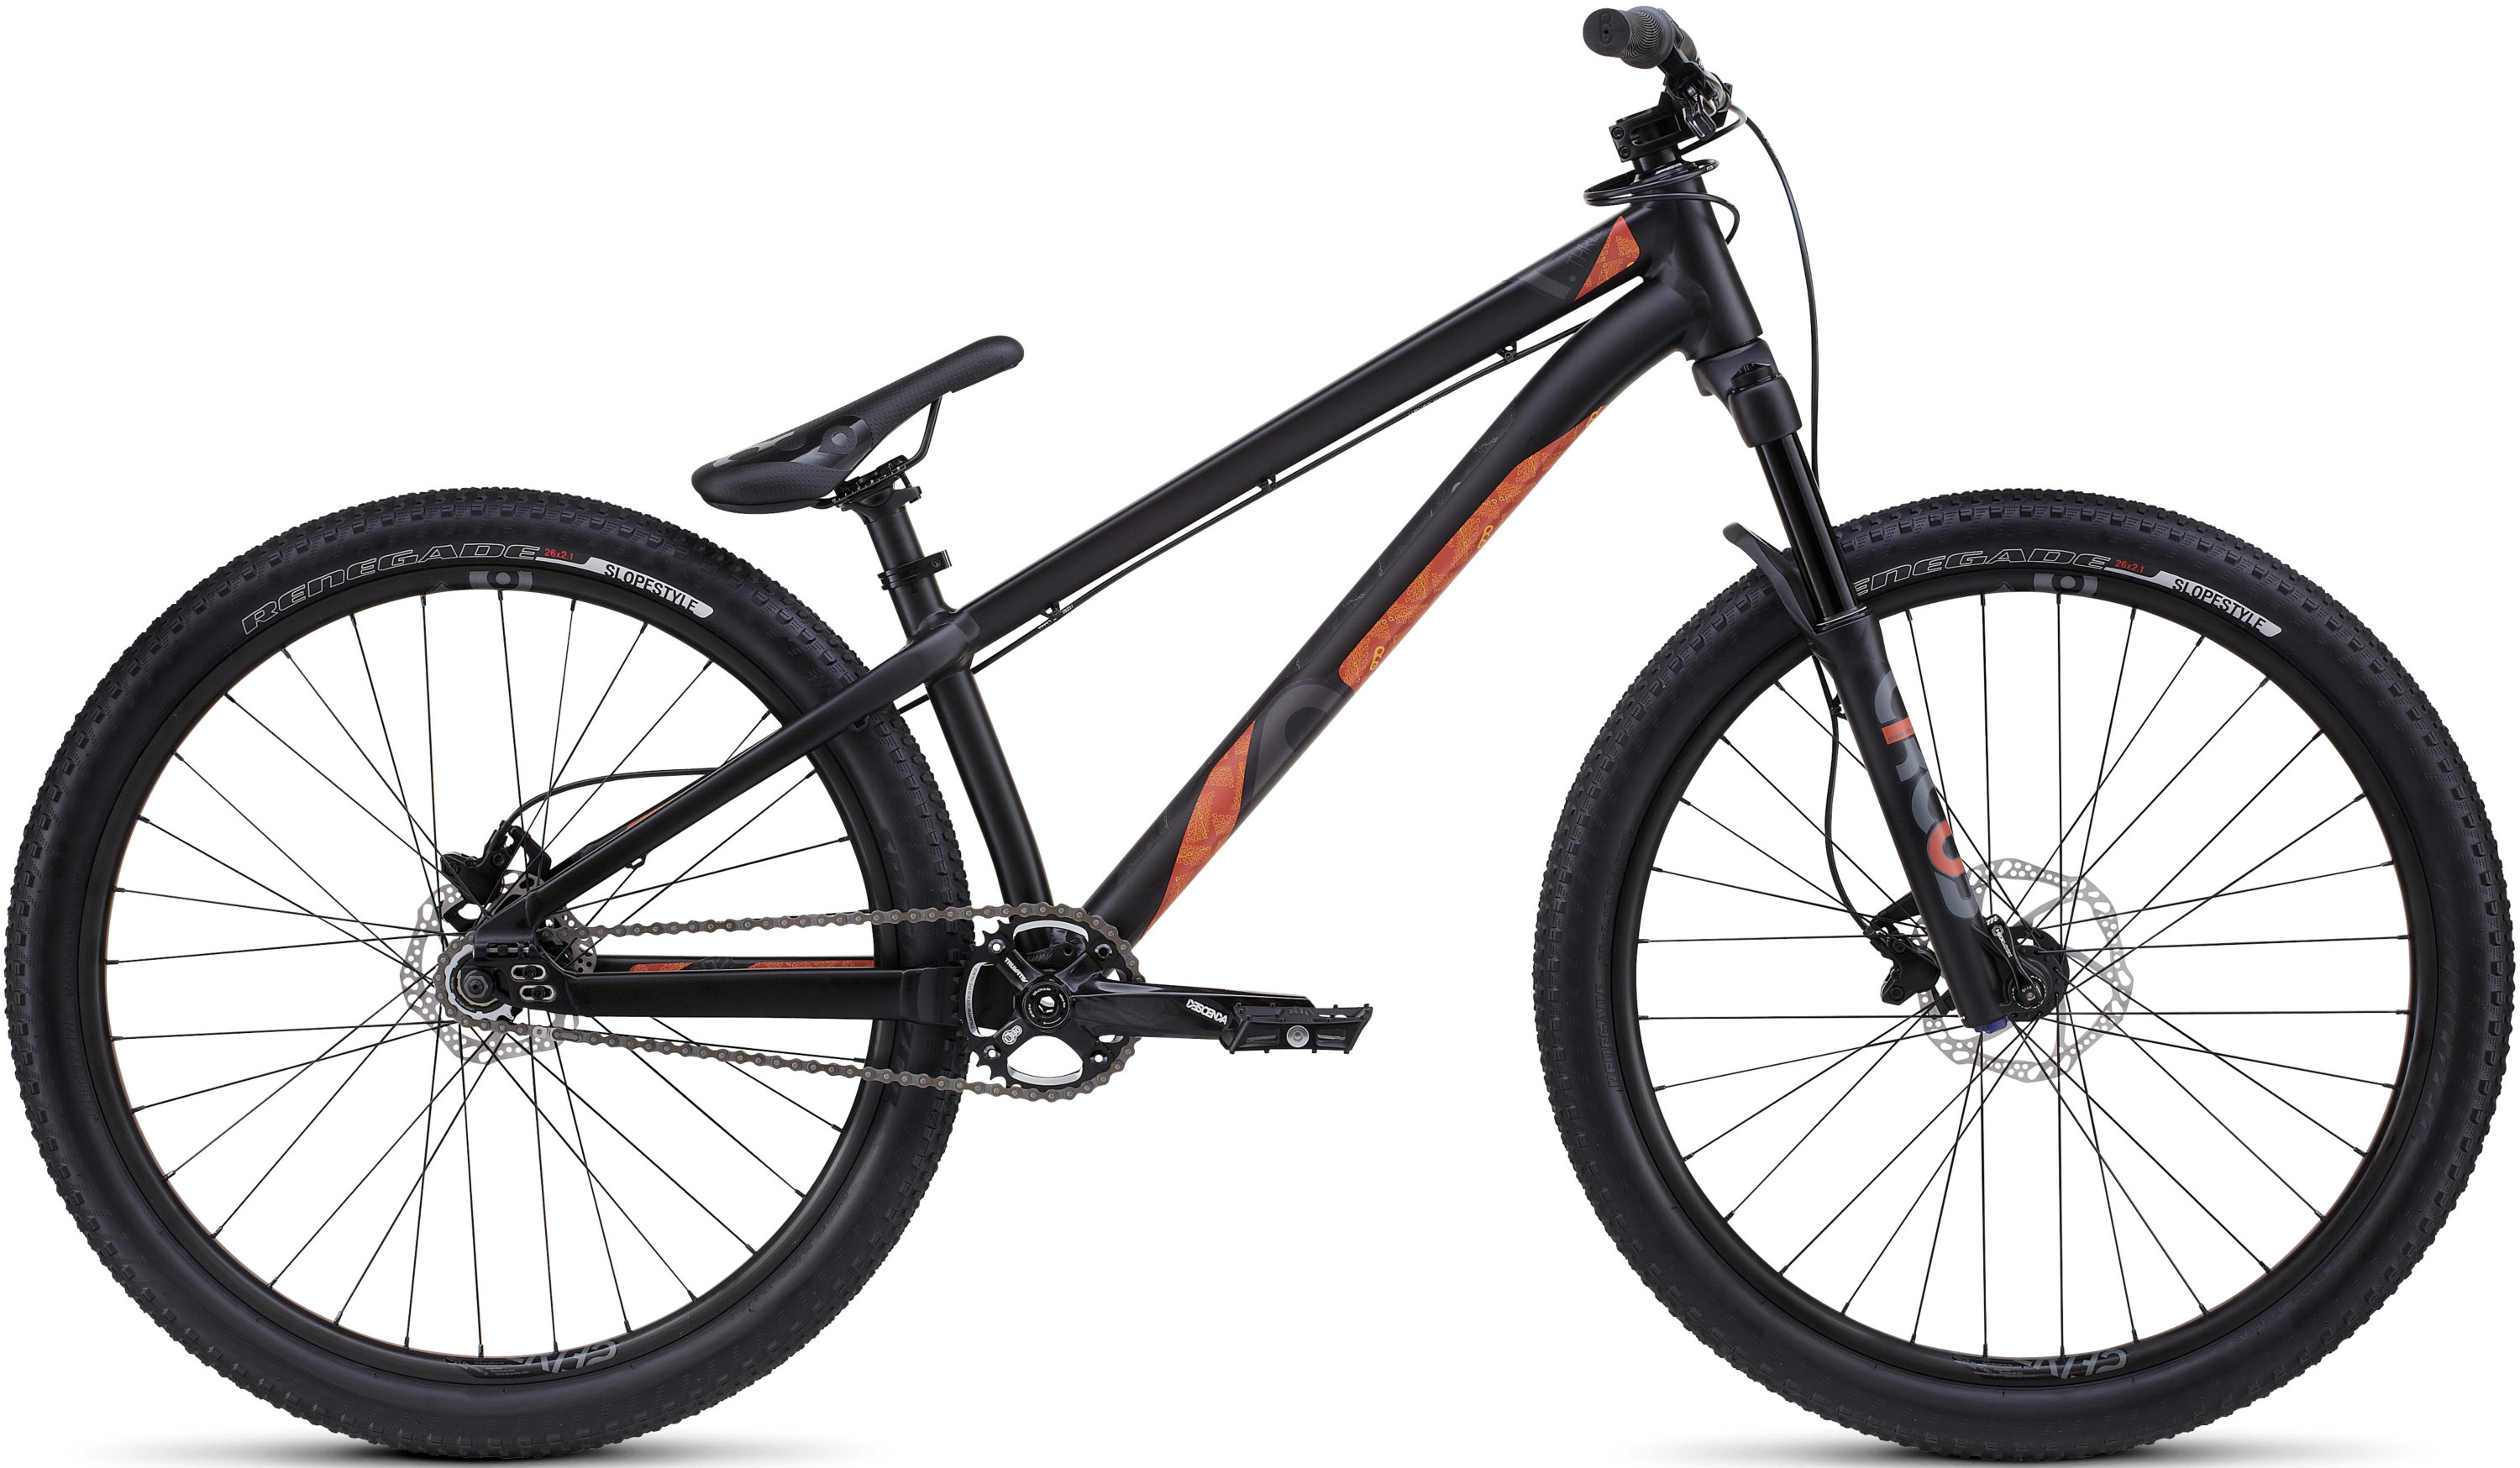 SPECIALIZED P3 BLK/VALORG/CHAR 22 - Bike Zone